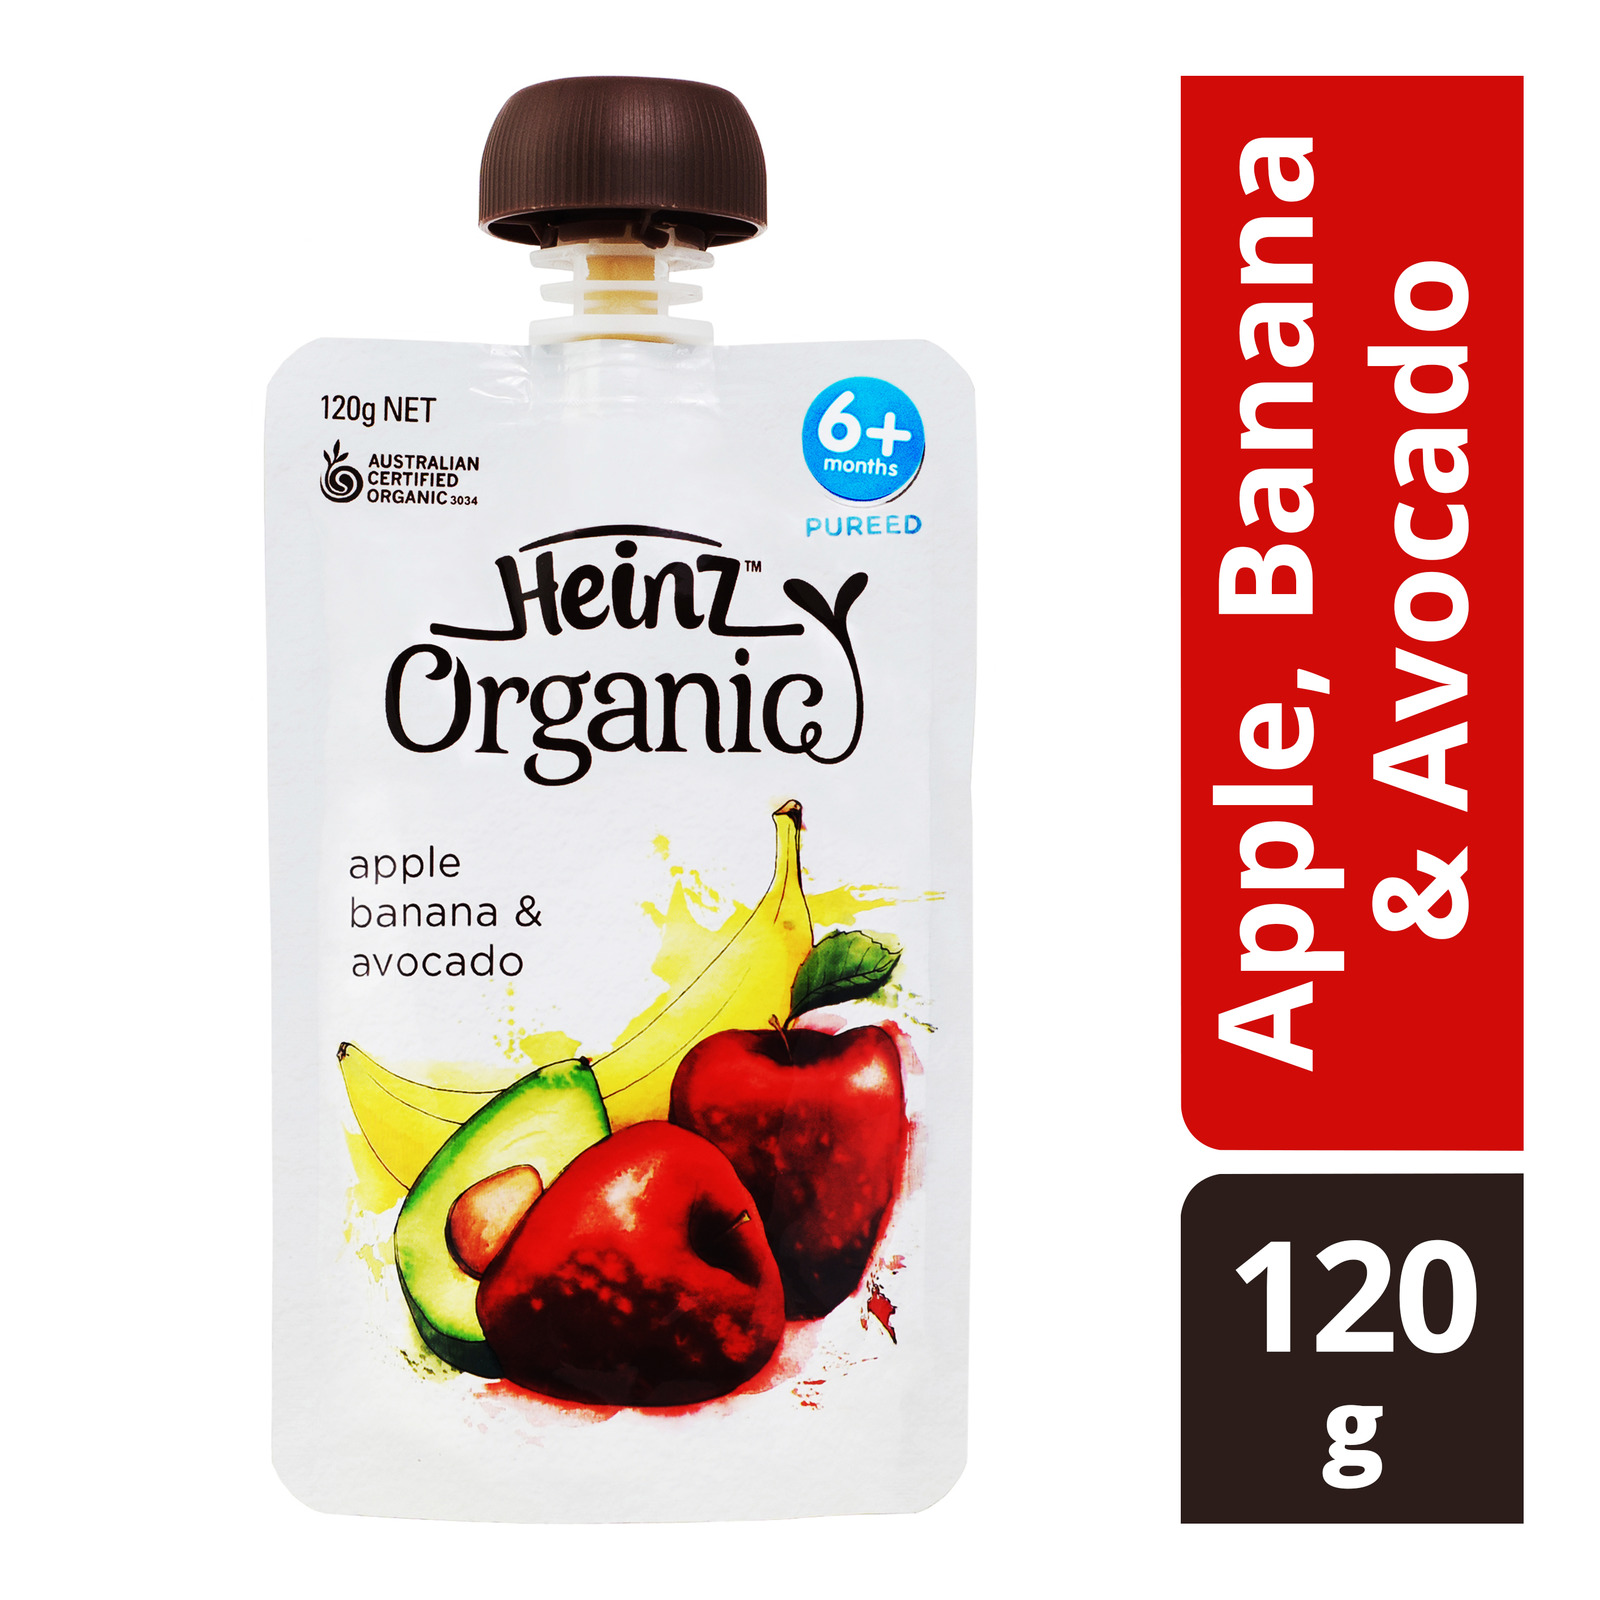 Heinz Organic Baby Puree Pouch - Apple, Banana & Avocado